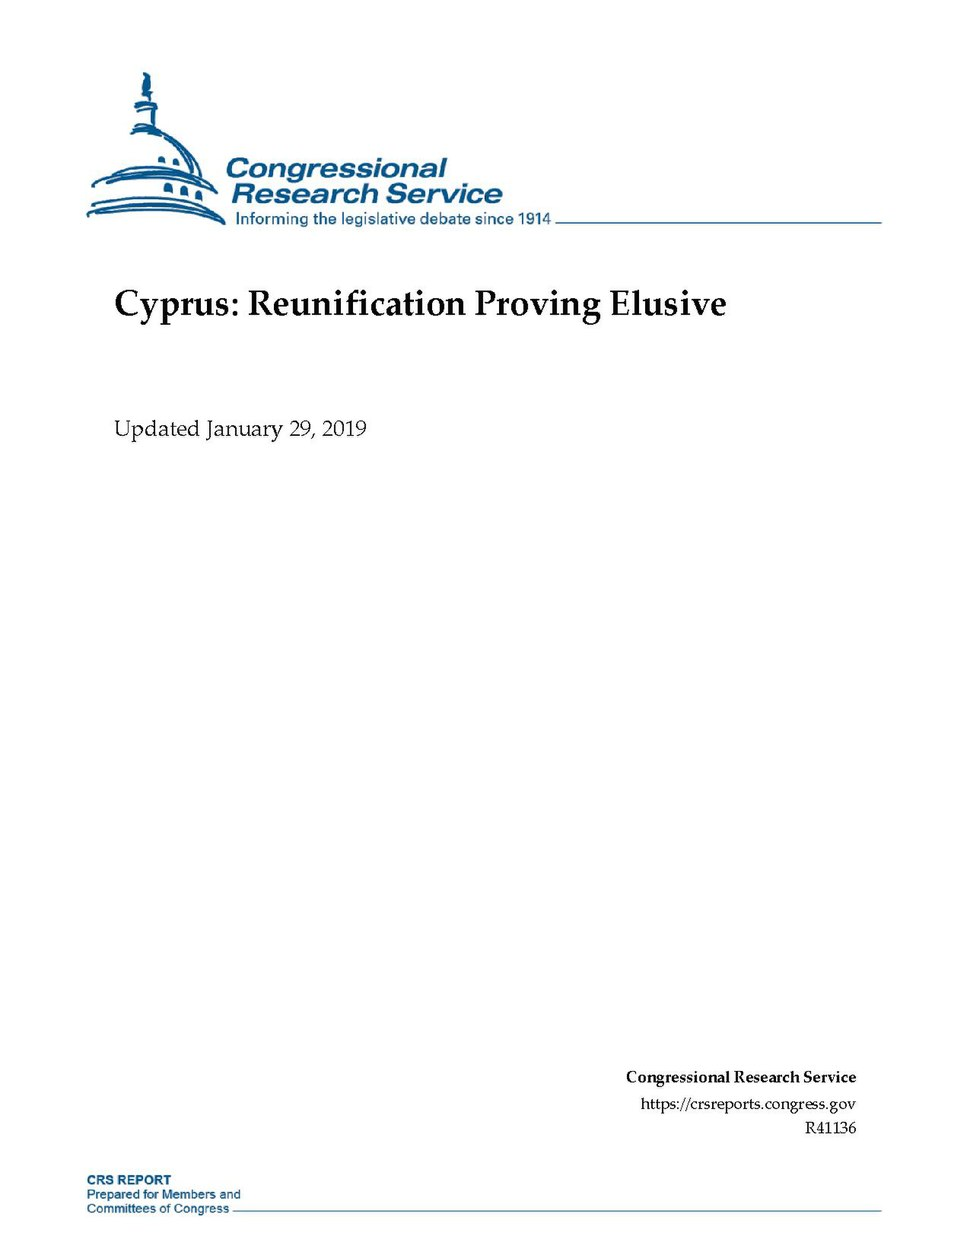 Congressional Research Service Report R41136 - Cyprus - Reunification Proving Elusive.pdf